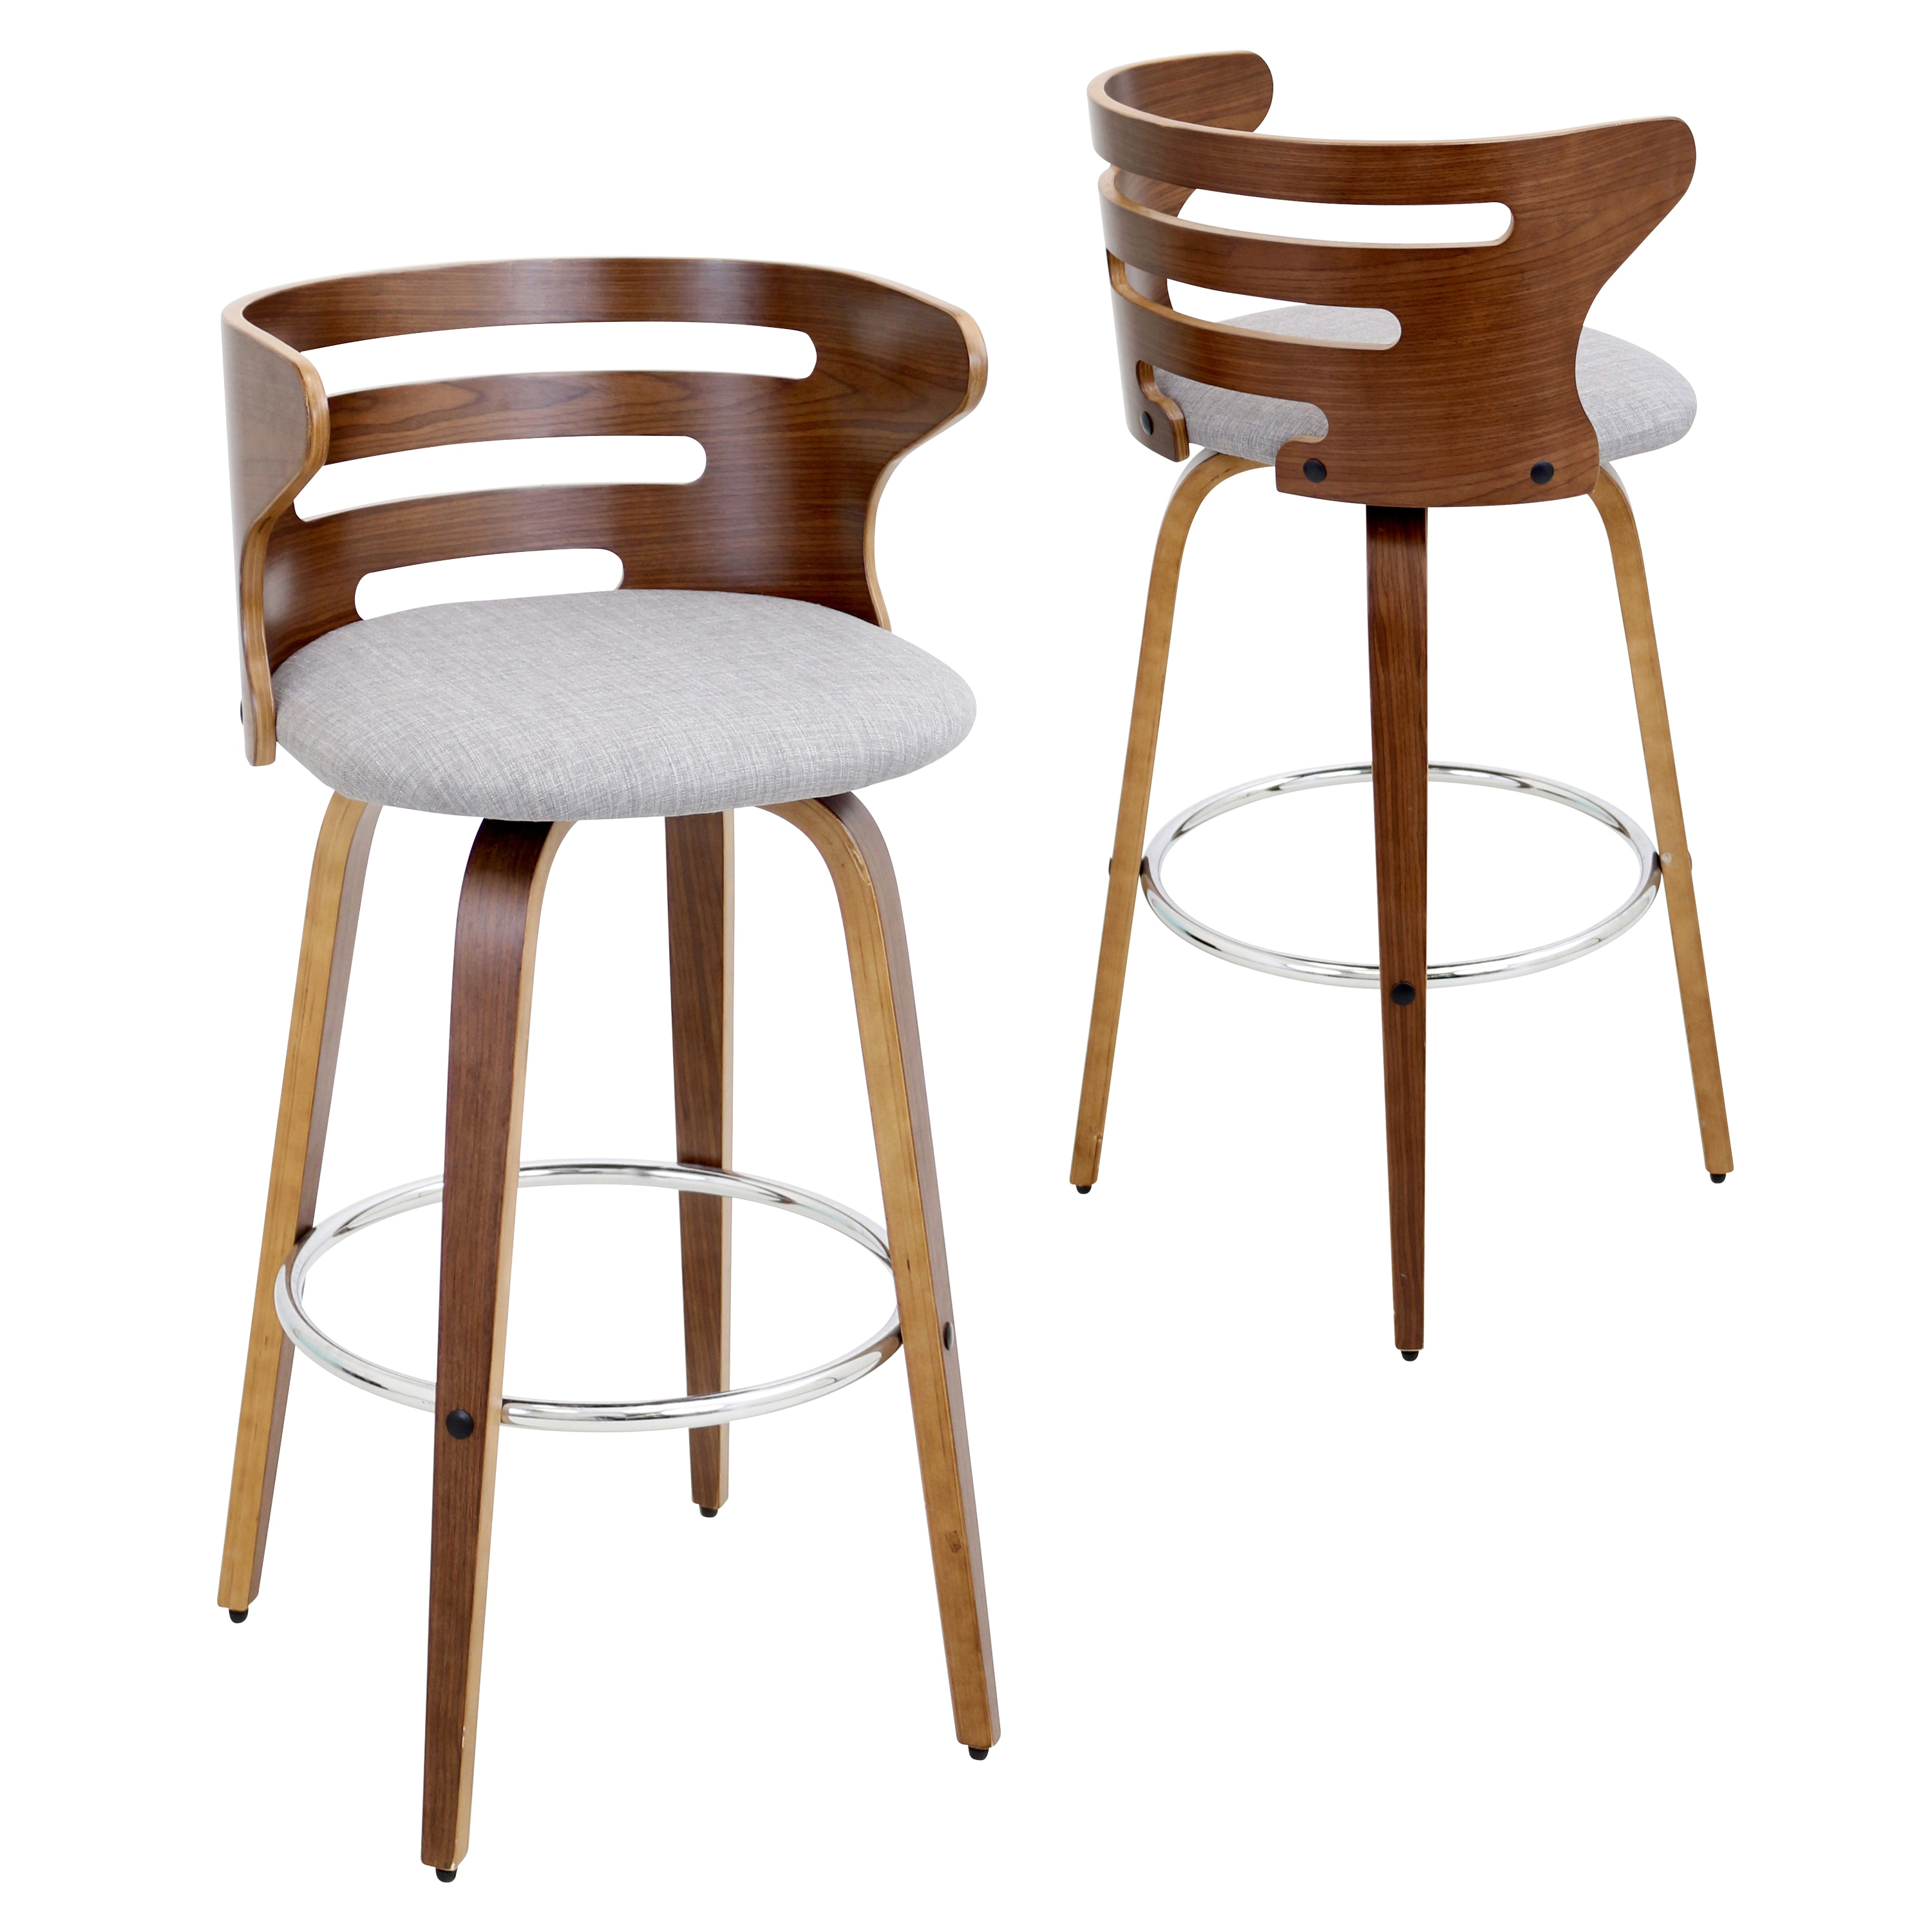 Pleasant Cosini Mid Century Modern 29 Bar Stool In Walnut And Light Pdpeps Interior Chair Design Pdpepsorg